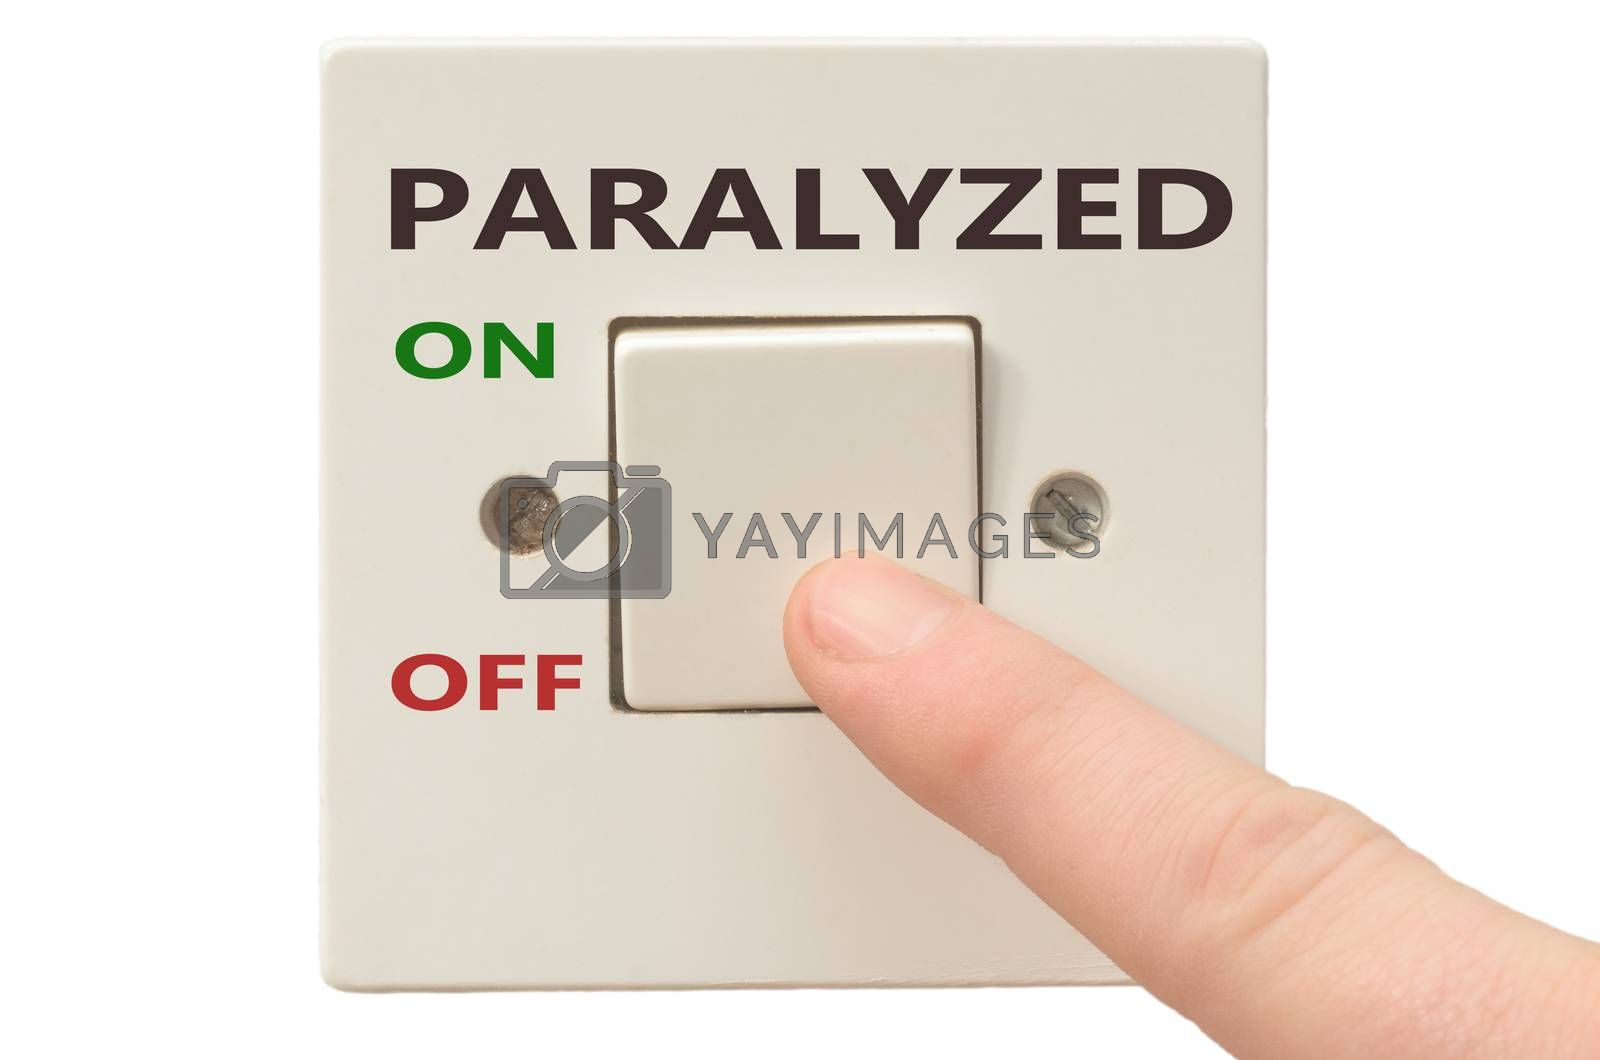 Turning off Paralyzed with finger on electrical switch